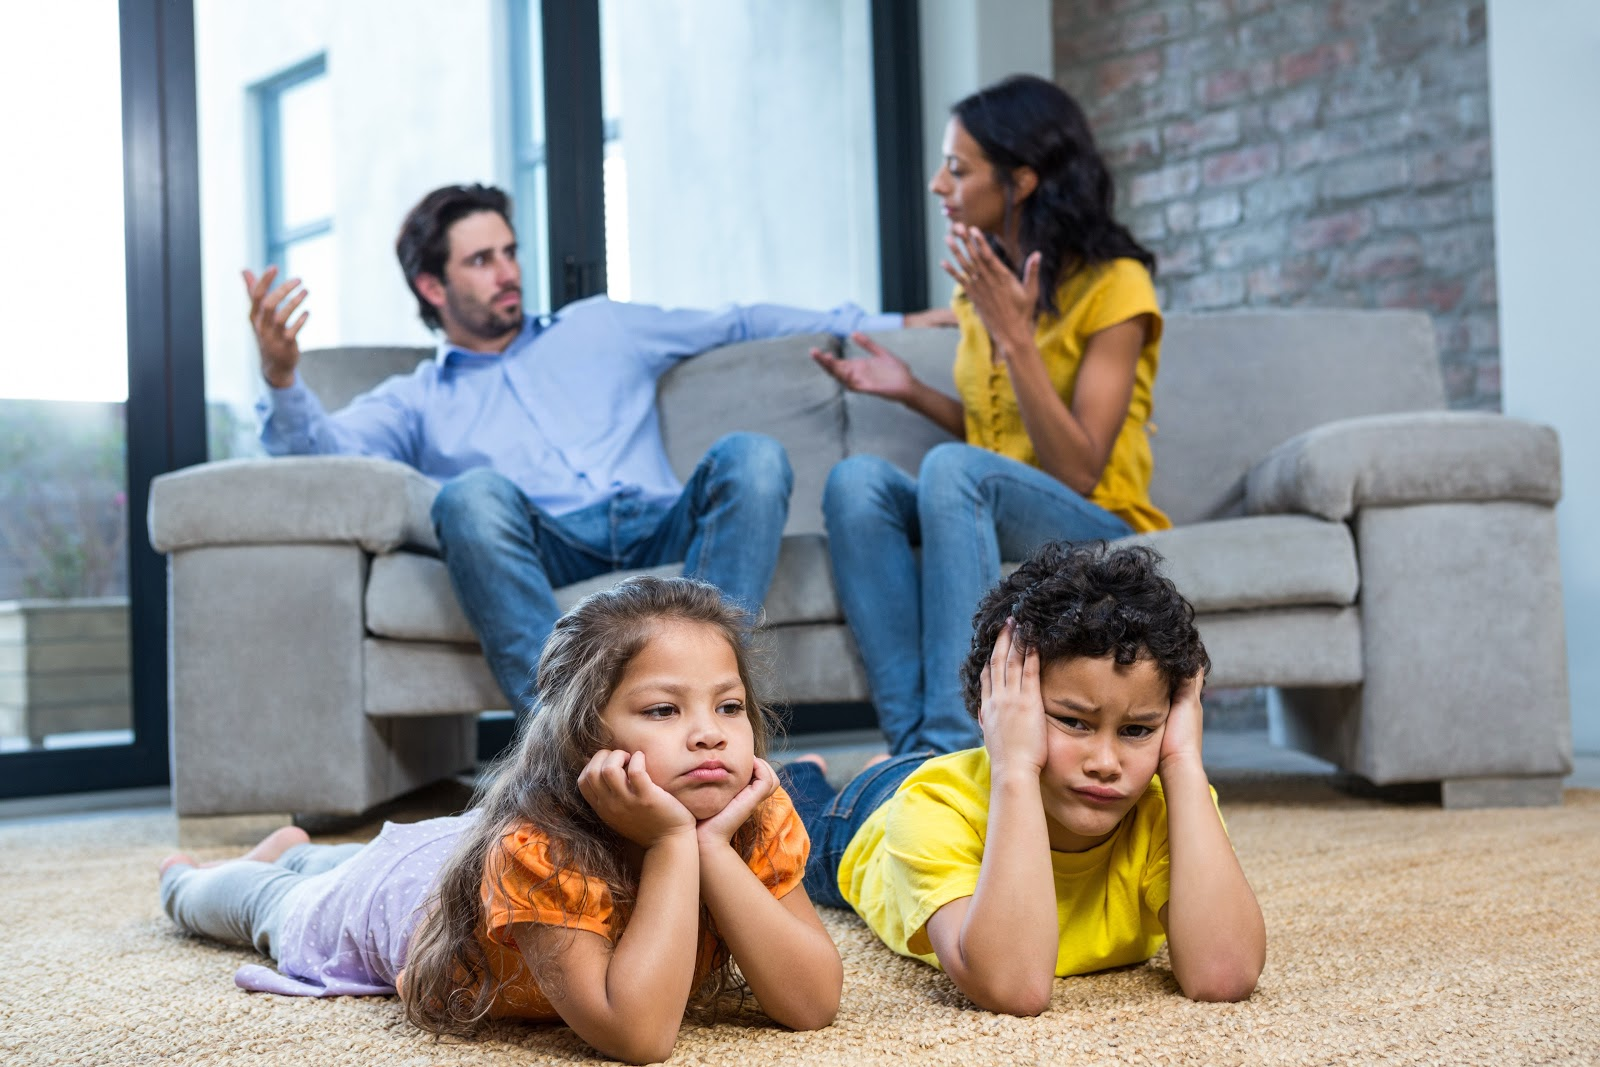 Children looking stressed while parents argue